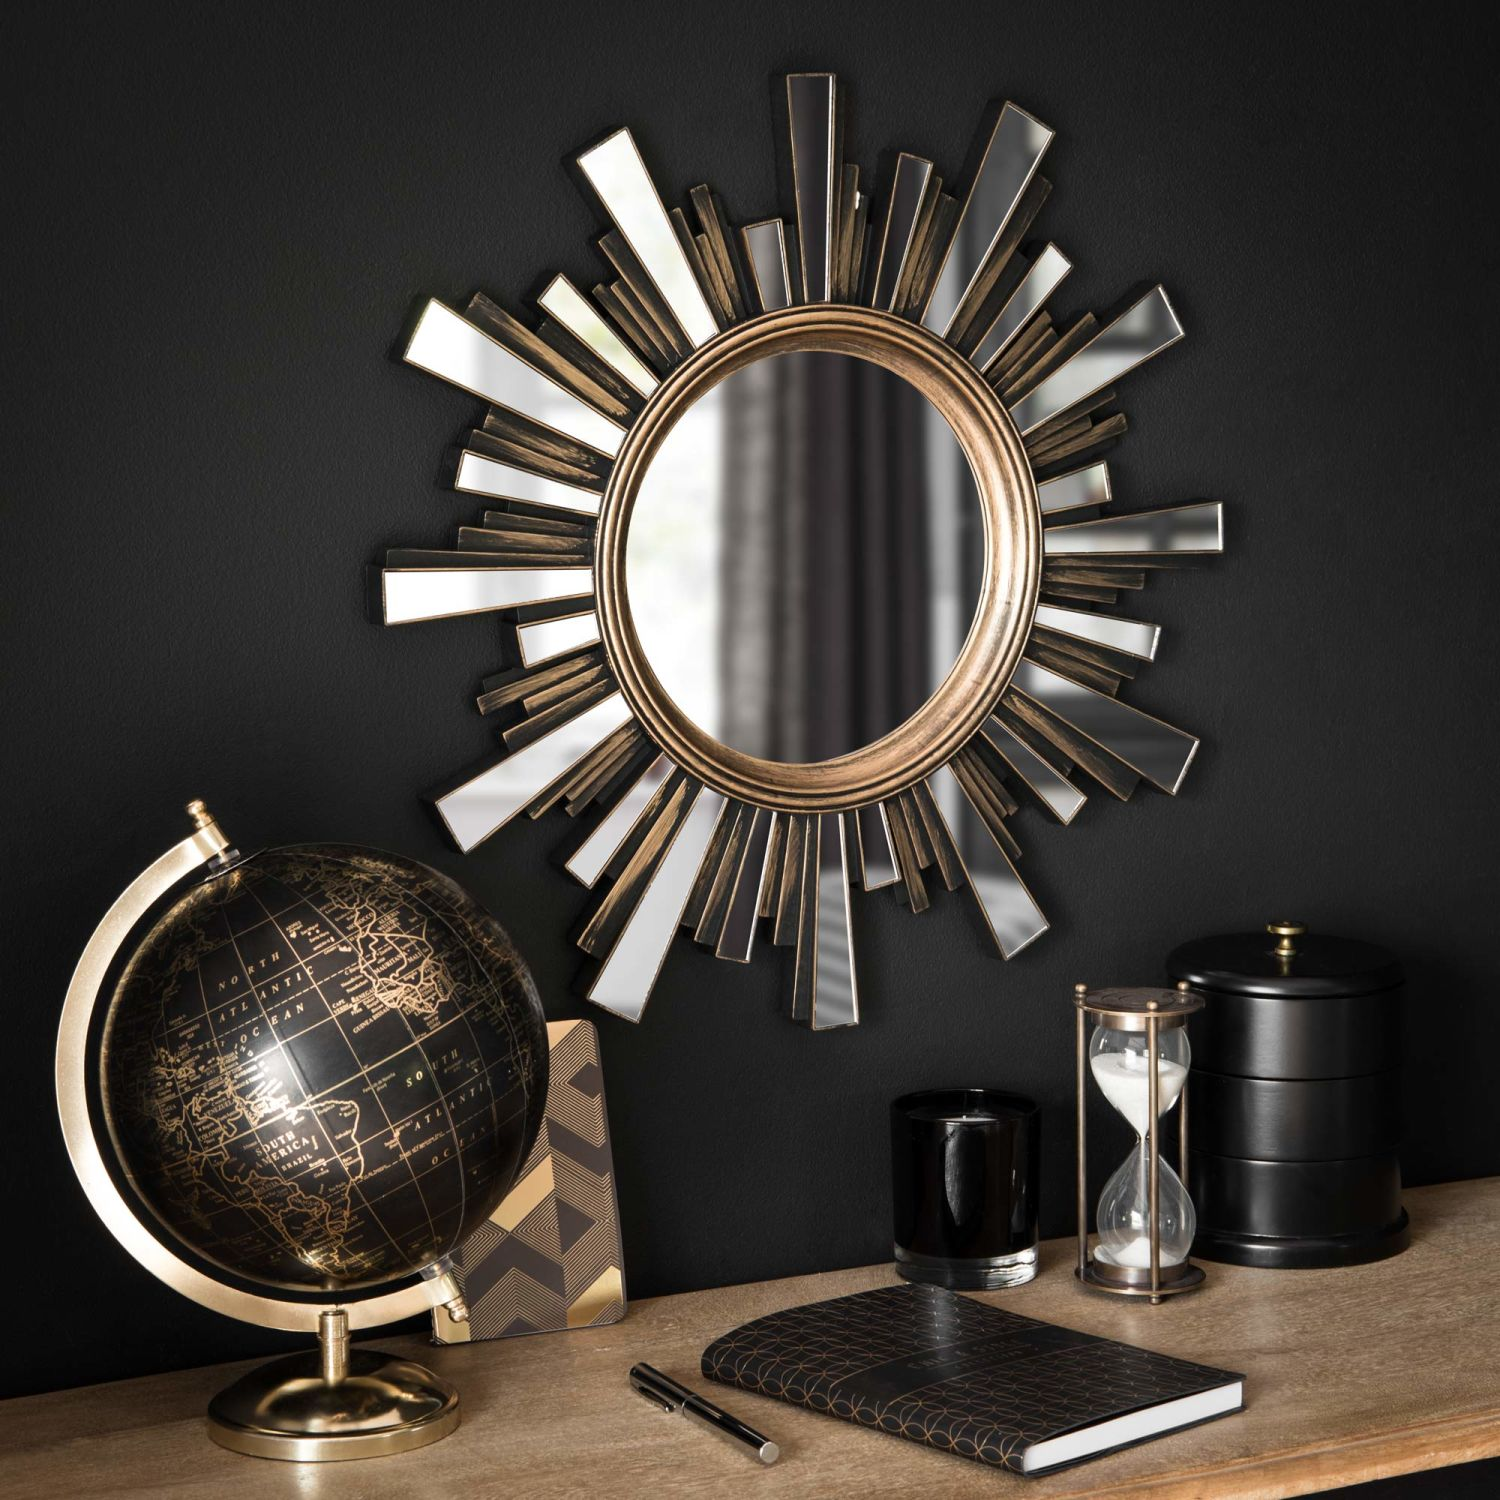 miroir soleil dor effet vieilli d48 maisons du monde. Black Bedroom Furniture Sets. Home Design Ideas